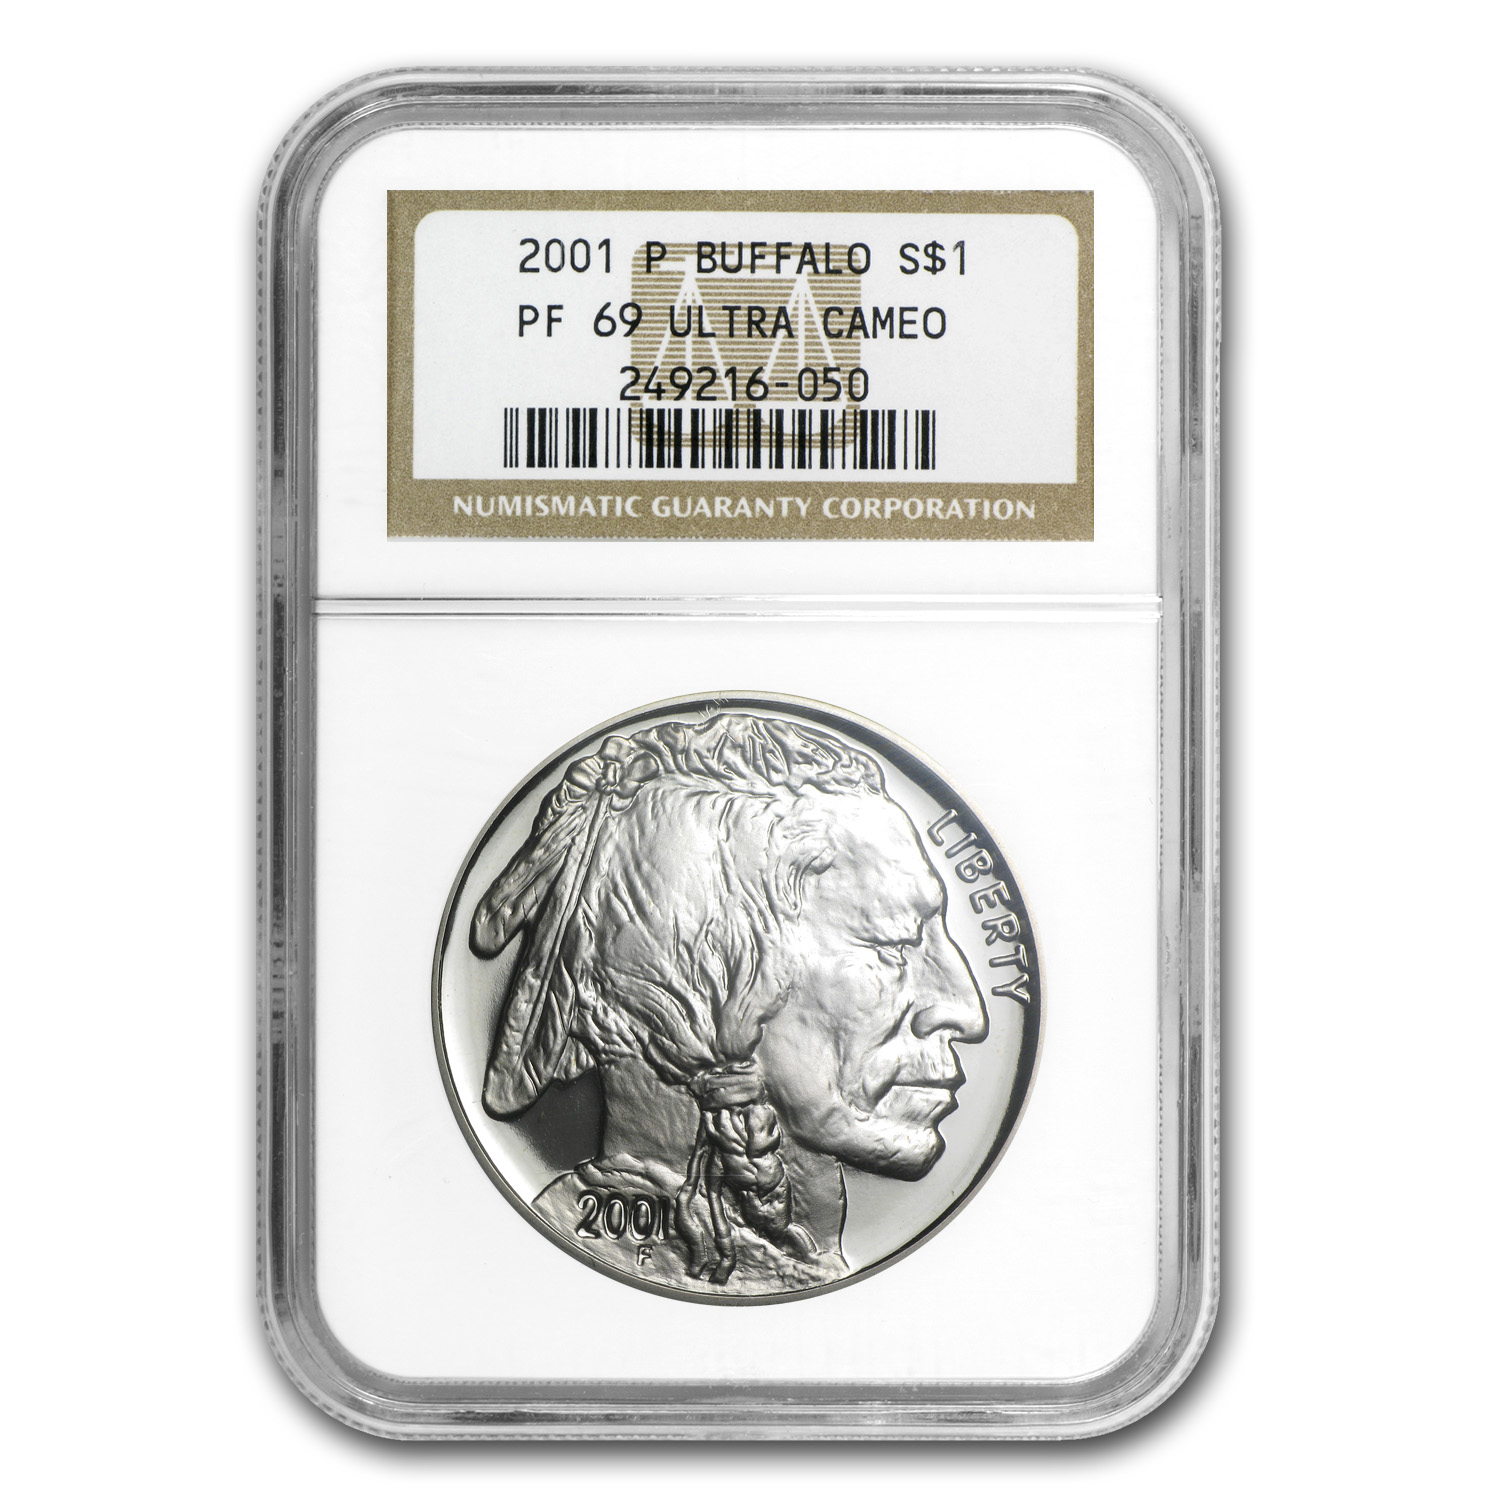 2001-P Buffalo $1 Silver Commemorative PF-69 NGC